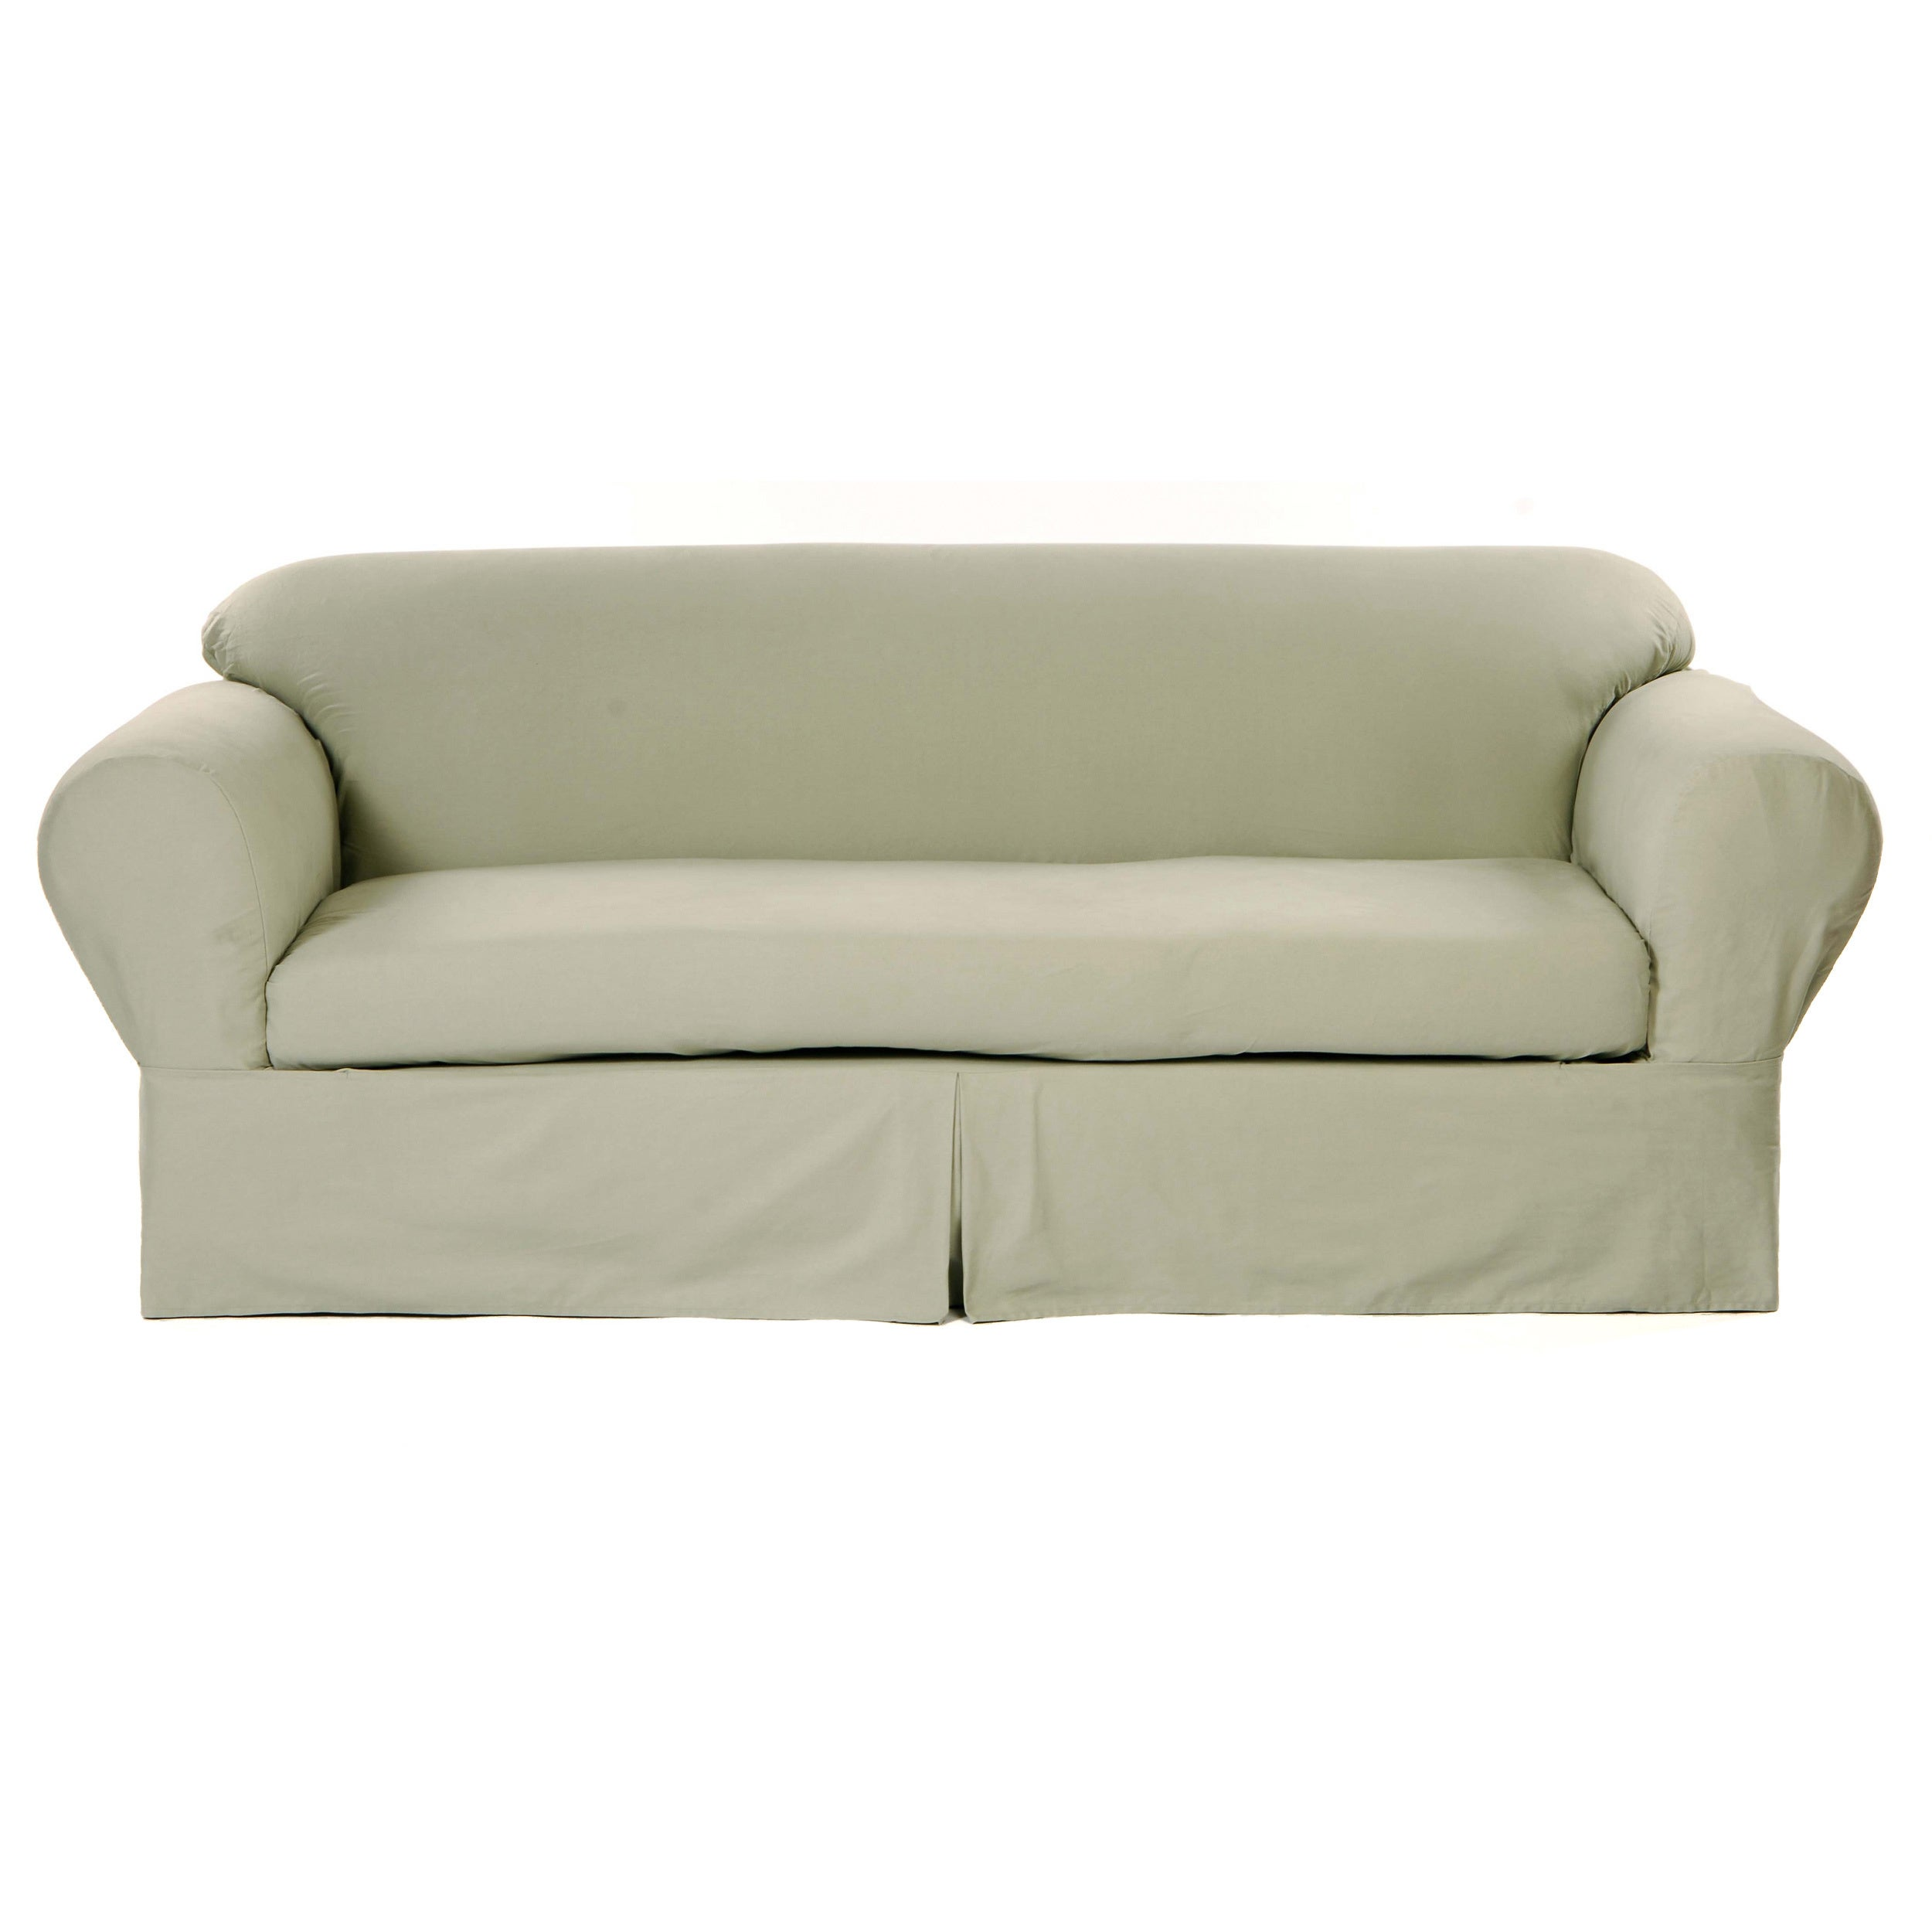 Shop Classic Slipcovers 2-piece Twill Sofa Slipcover - Free Shipping ...